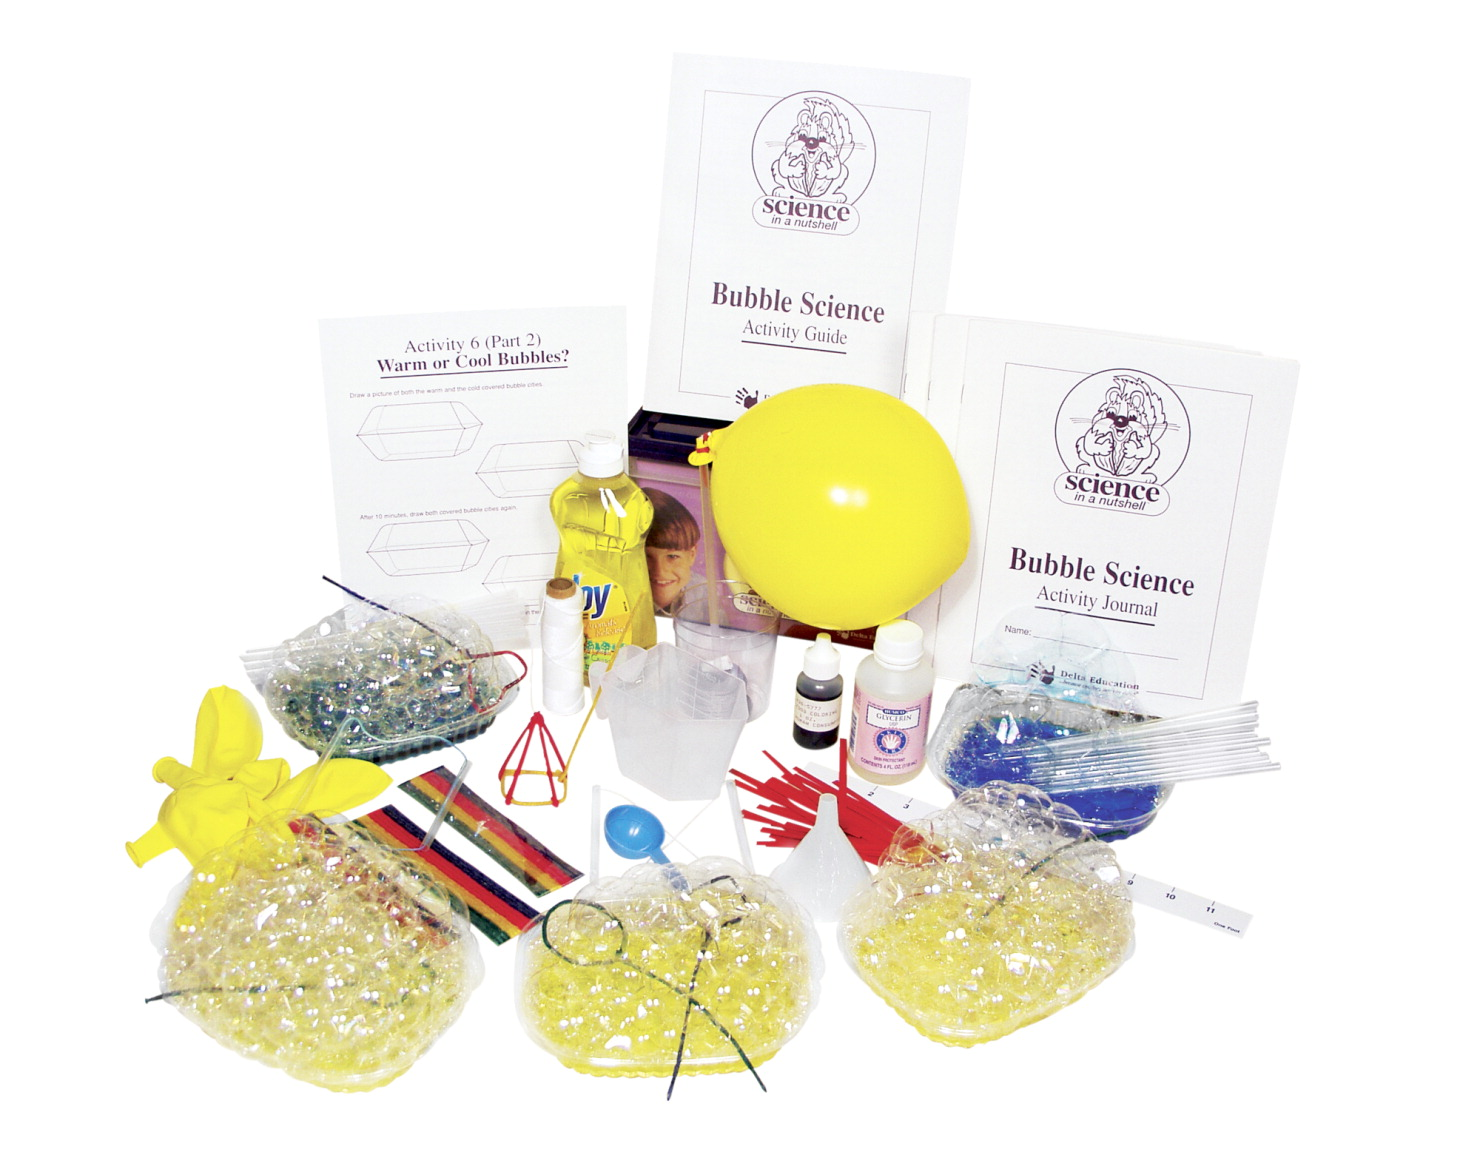 Delta Science in a Nutshell Bubble Science Kit